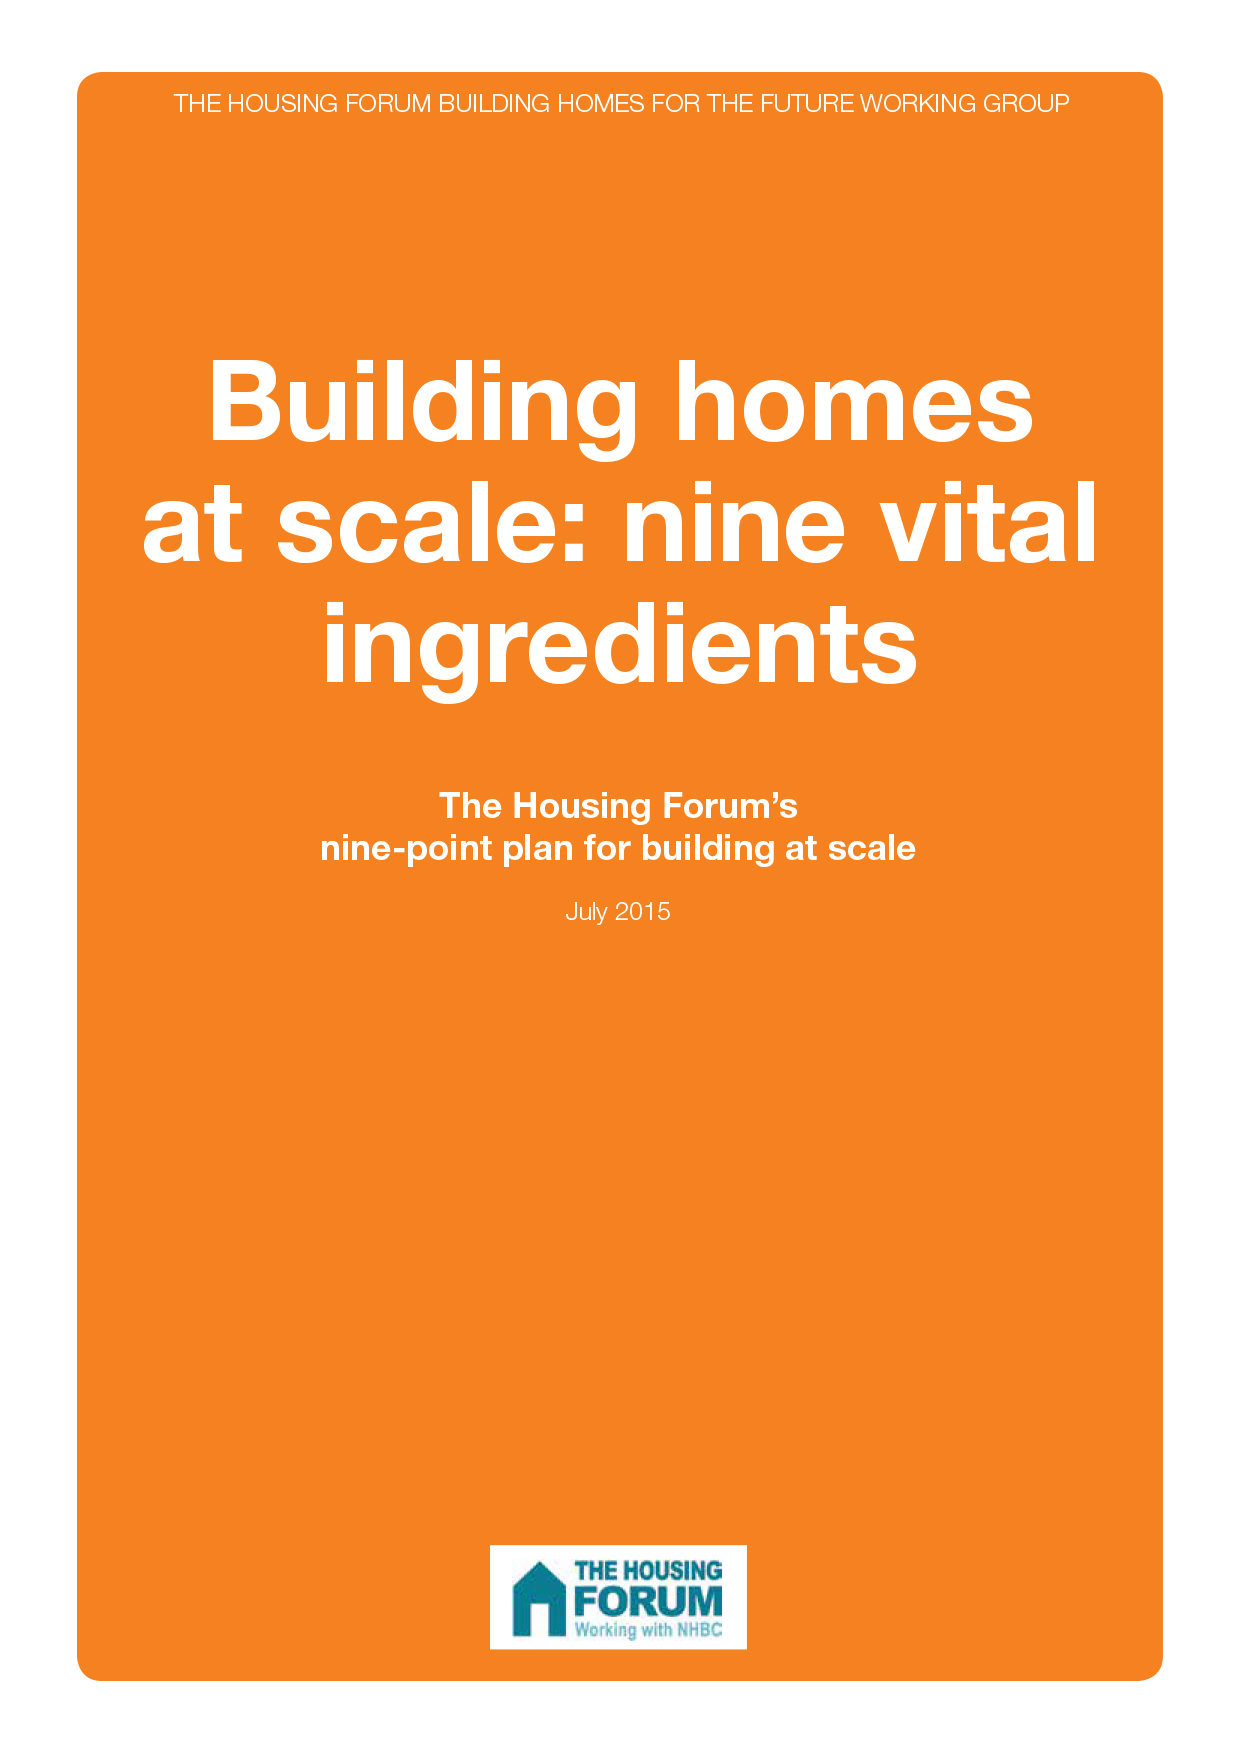 Building homes at scale: nine vital ingredients